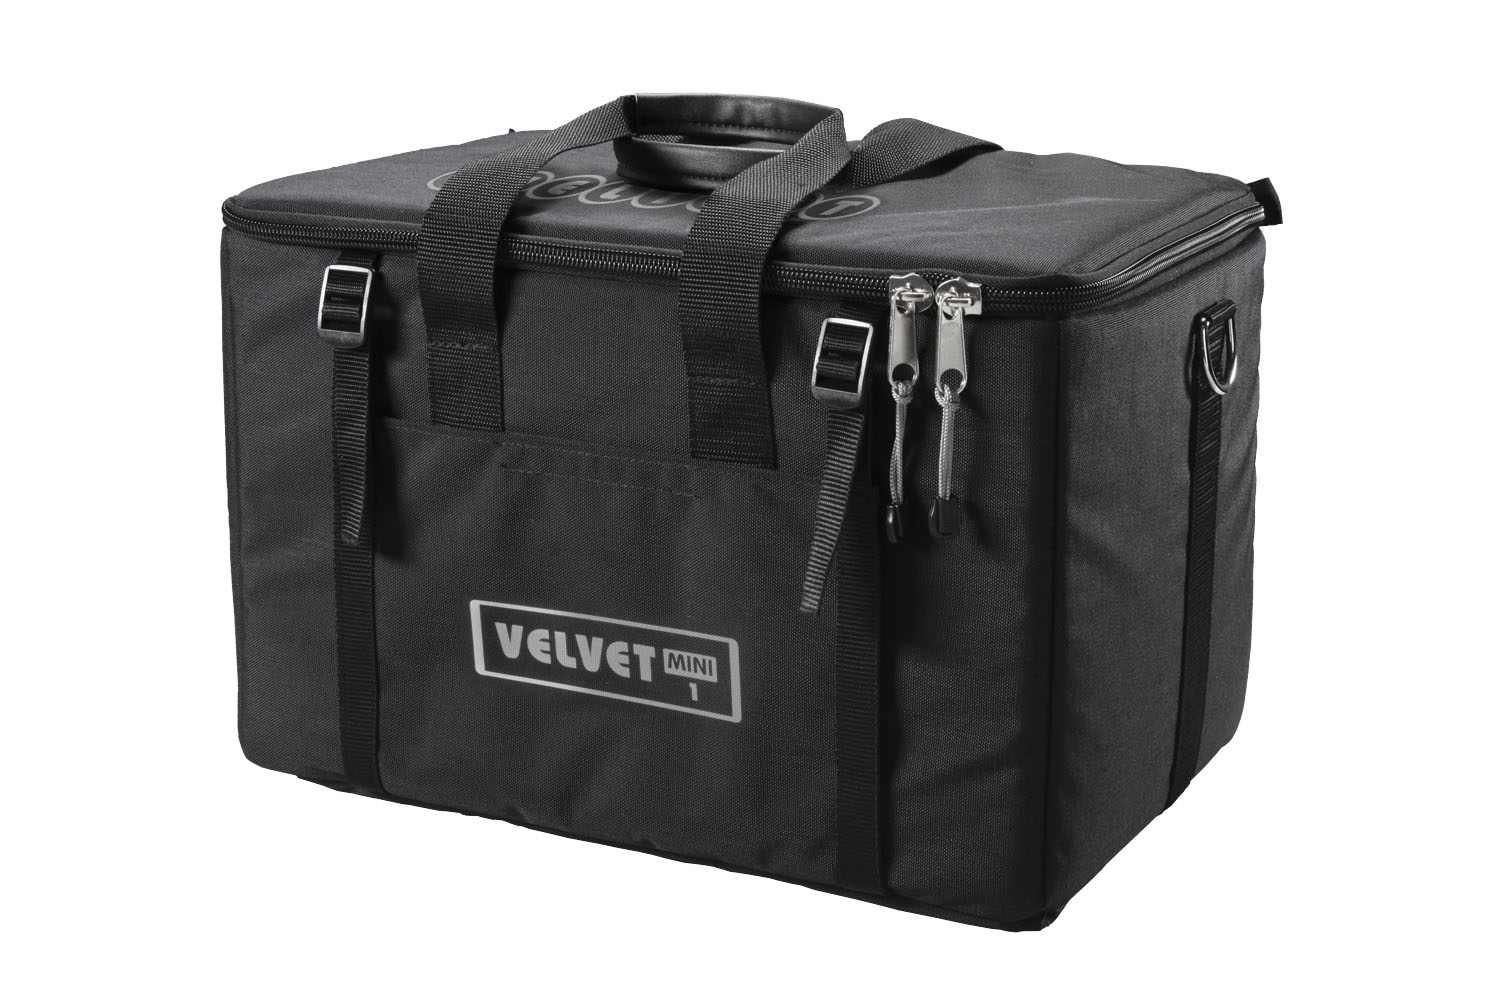 VELVET MINI 1 Double Cordura soft bag